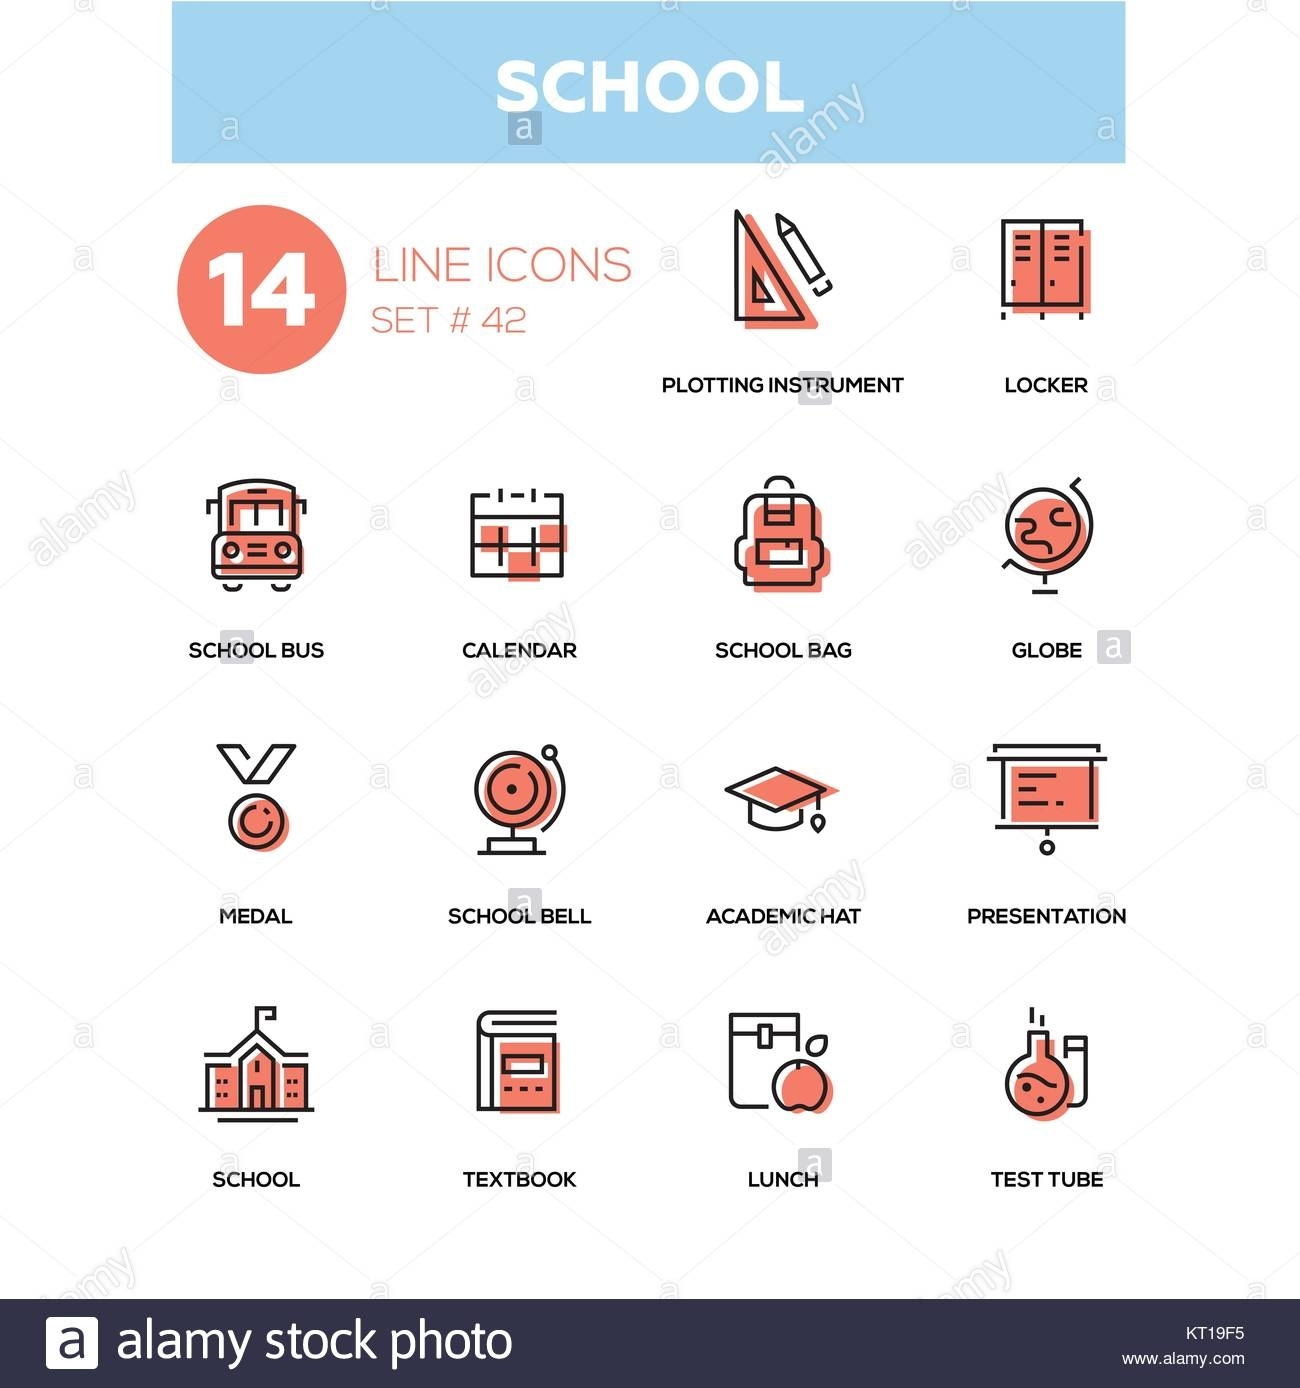 School Lunch Stock Vector Images - Alamy regarding Printable Calendars With Designs By Meatpixel